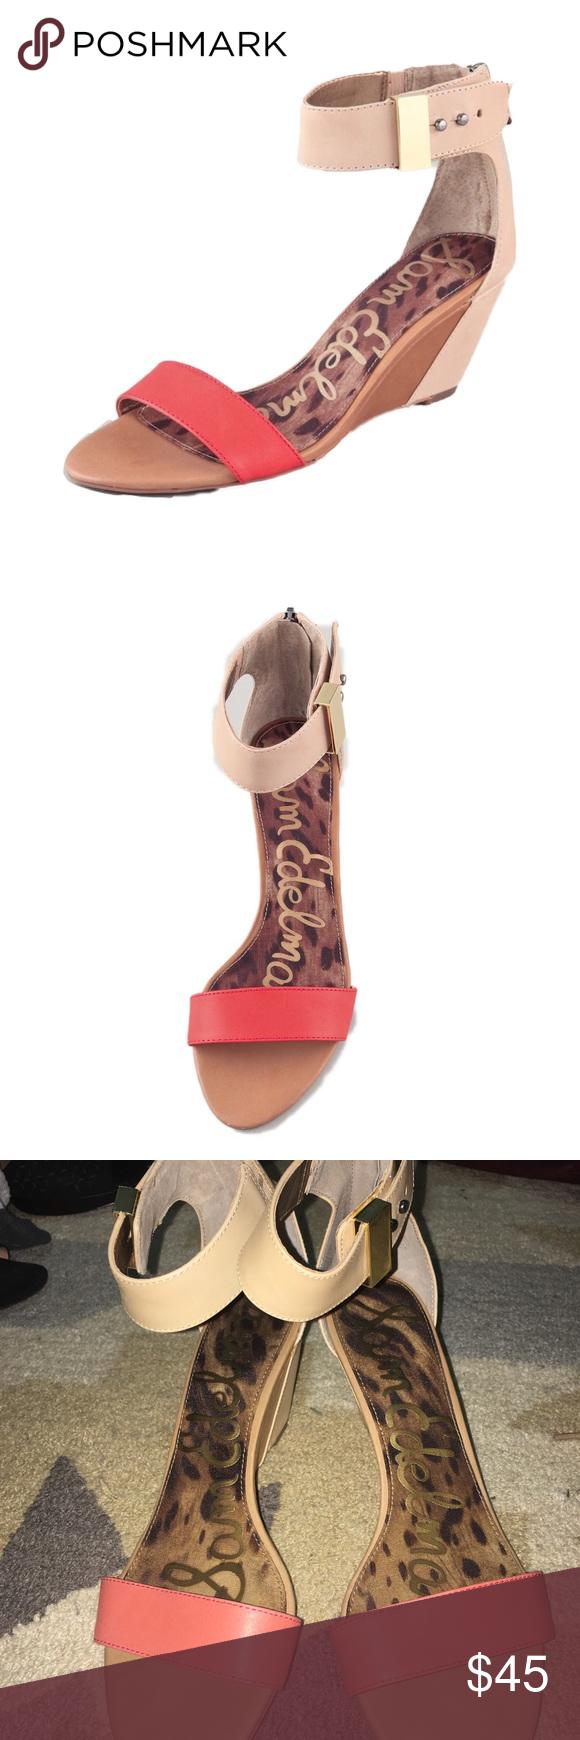 Sam Edelman Sophie Low Wedge Sandals Originally sold at Nordstrom, these leather sandals feature a coral toe strap and a hidden back zip. Button closure at ankle. Covered wedge heel and synthetic sole. Barely worn if at all.   * Heel: 2.5